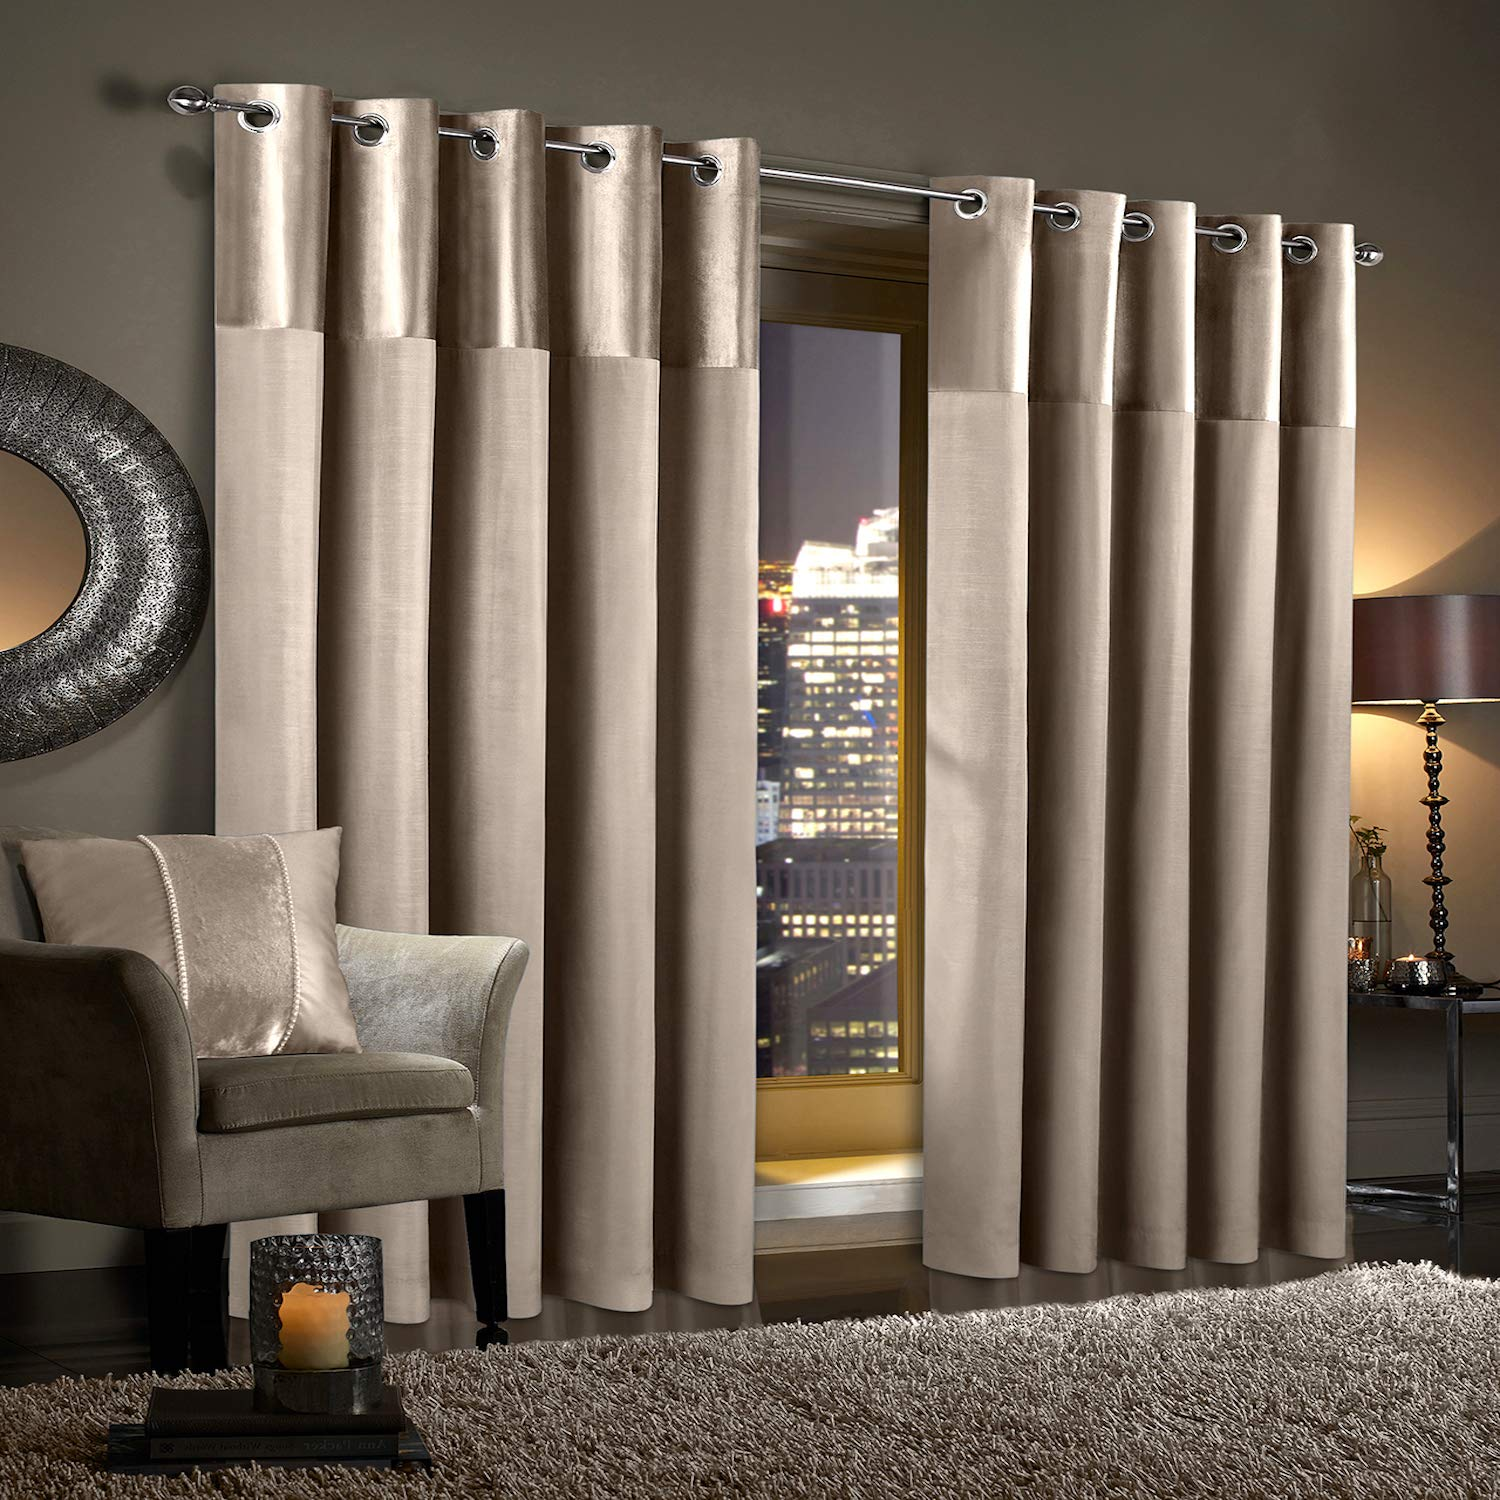 Champagne Natural Crushed Velvet Pair of Fully Lined Ring Top Eyelet Curtains